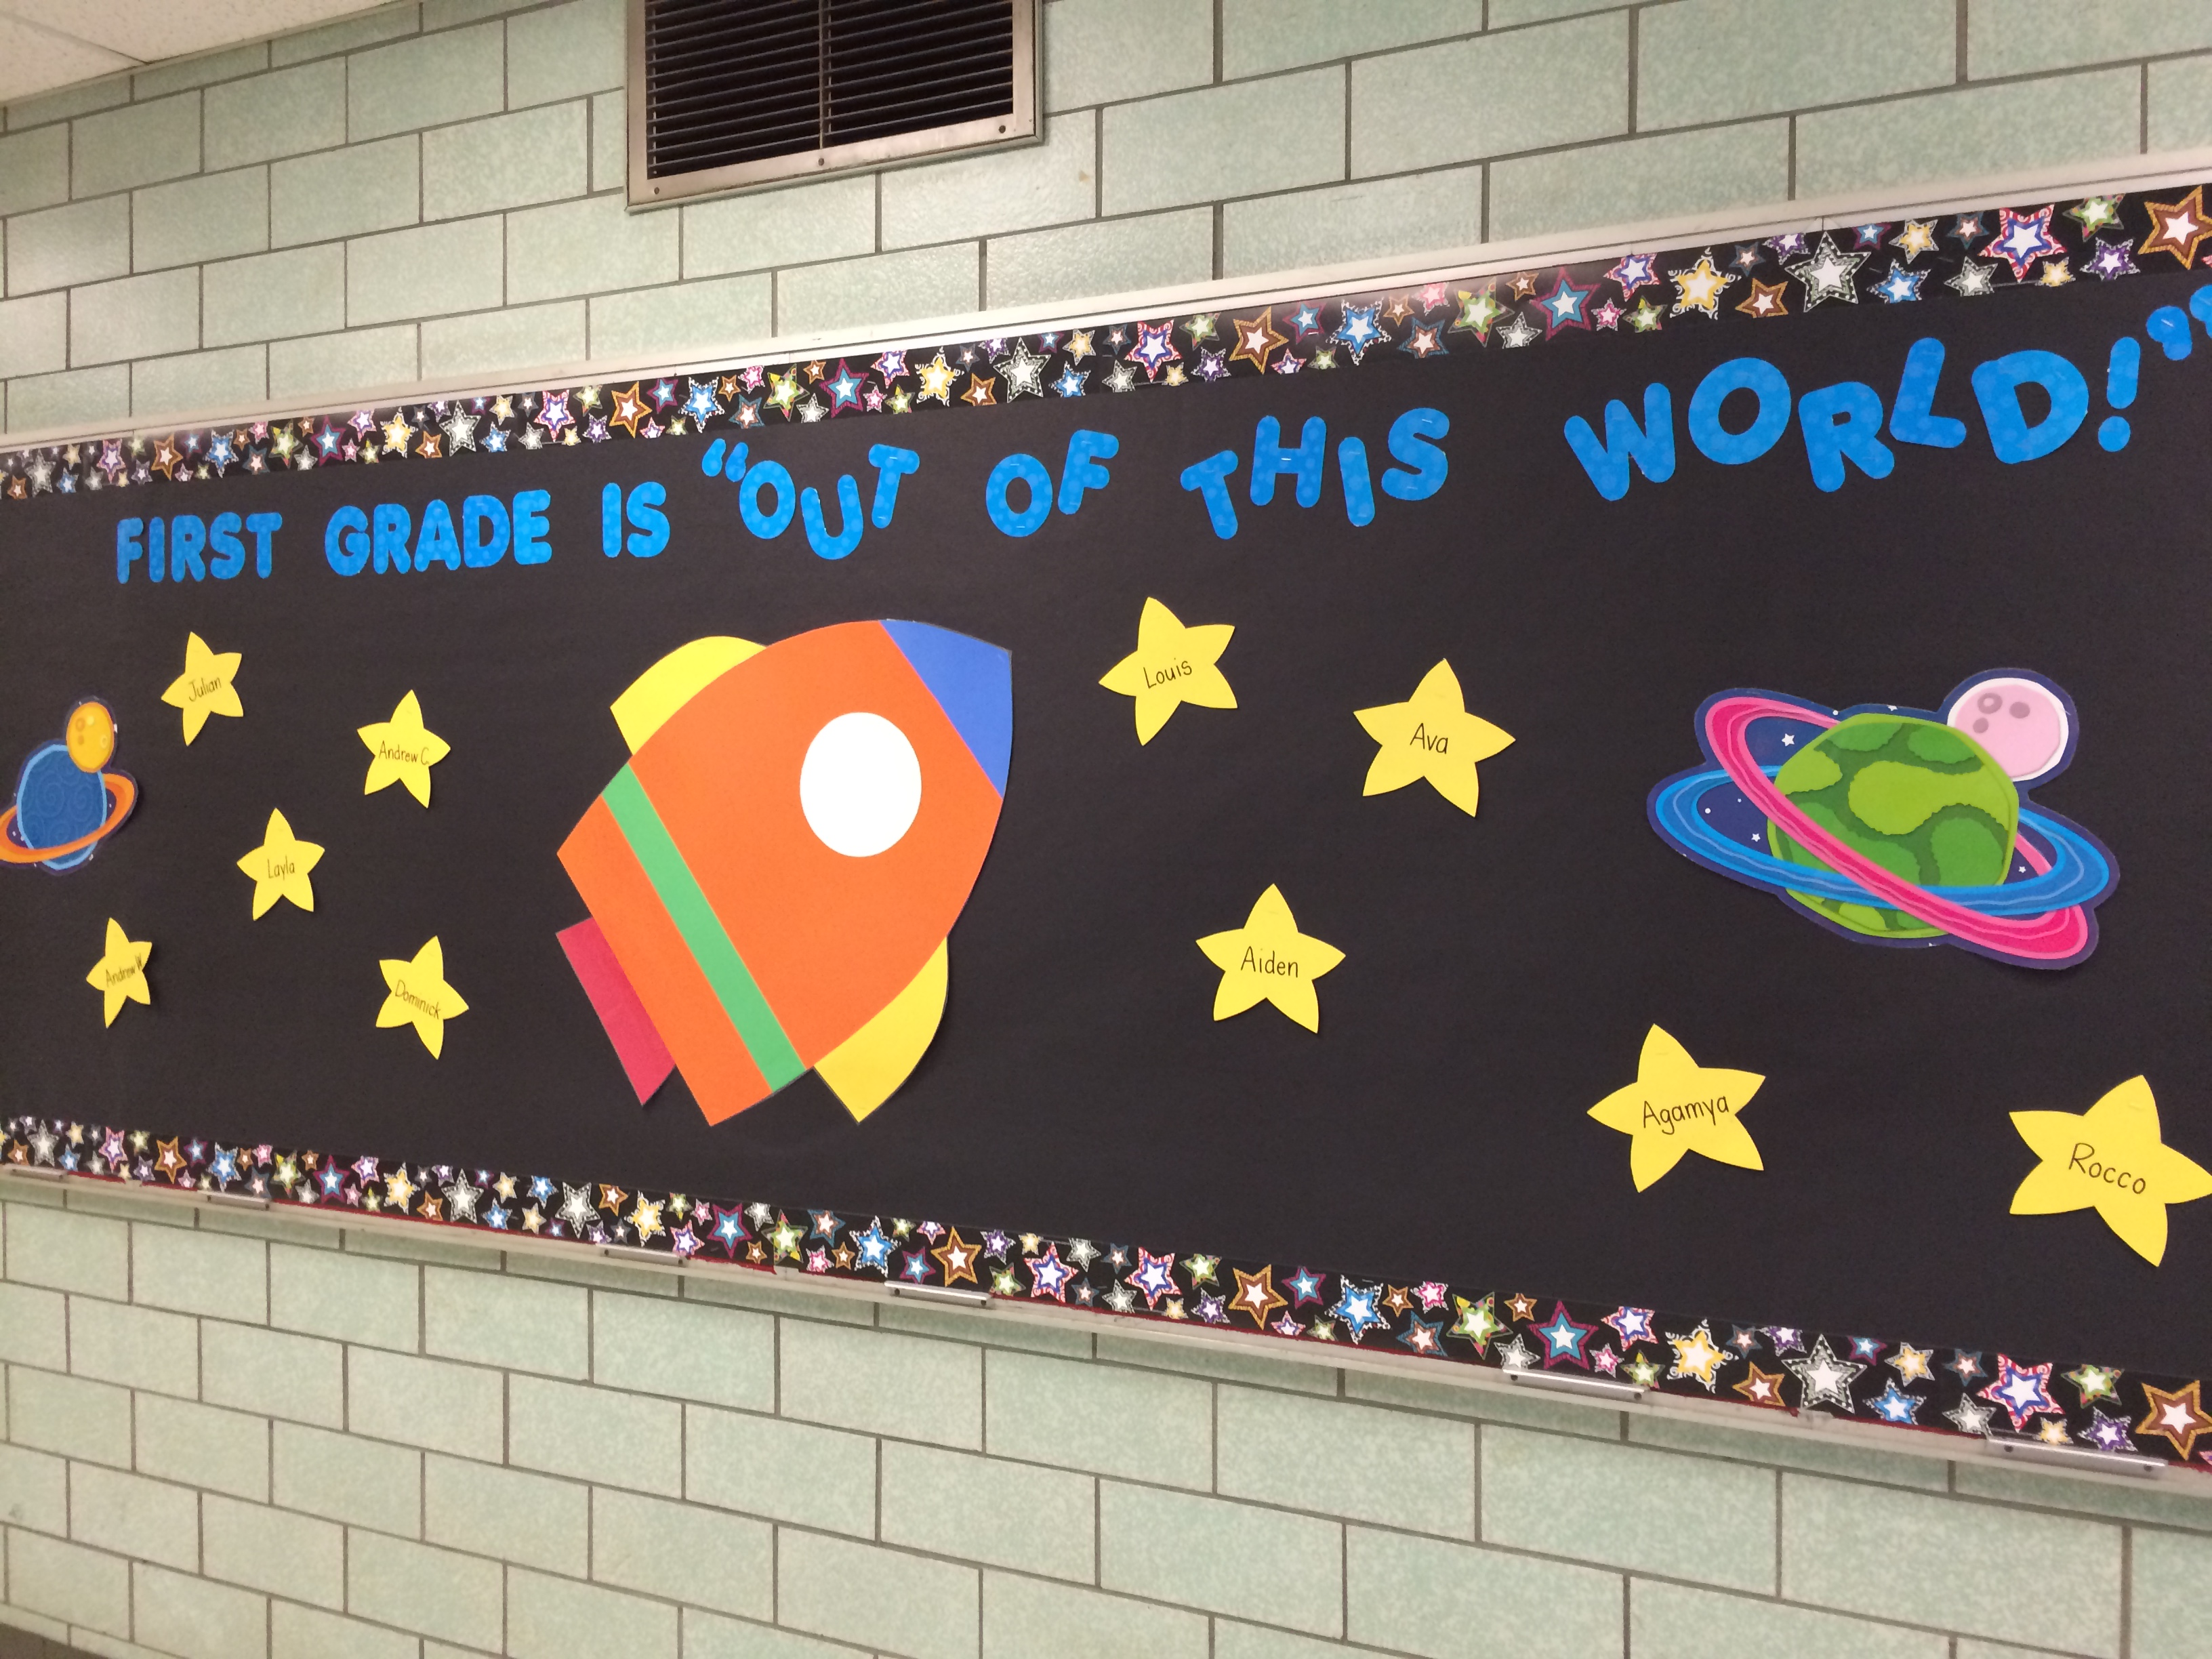 First Grade is Out of This World